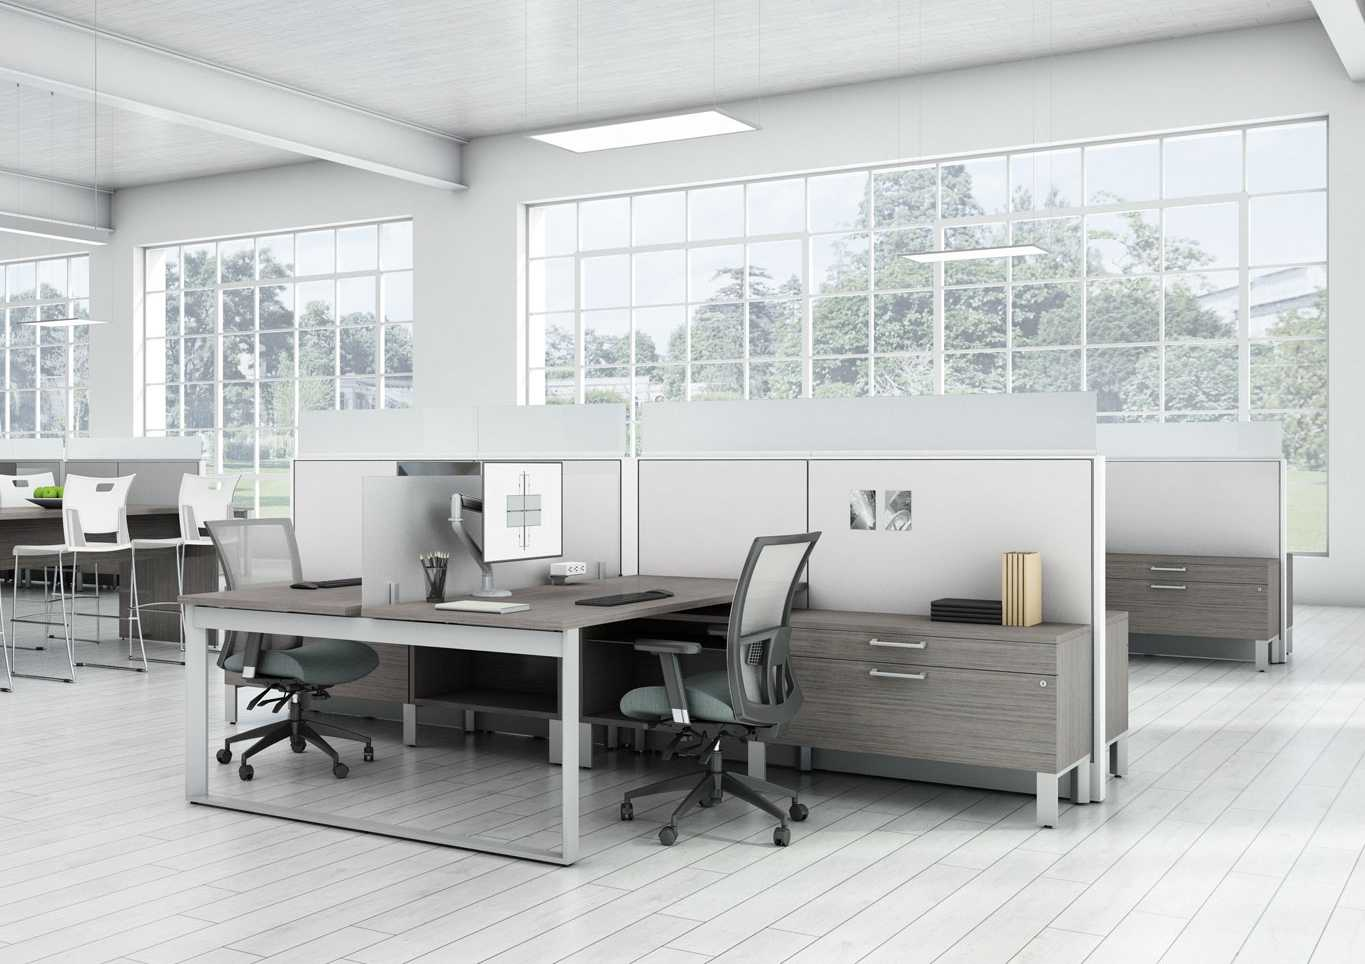 Evolve Panel System Amp Workstations Buy Rite Business Furnishings Office Furniture Vancouver